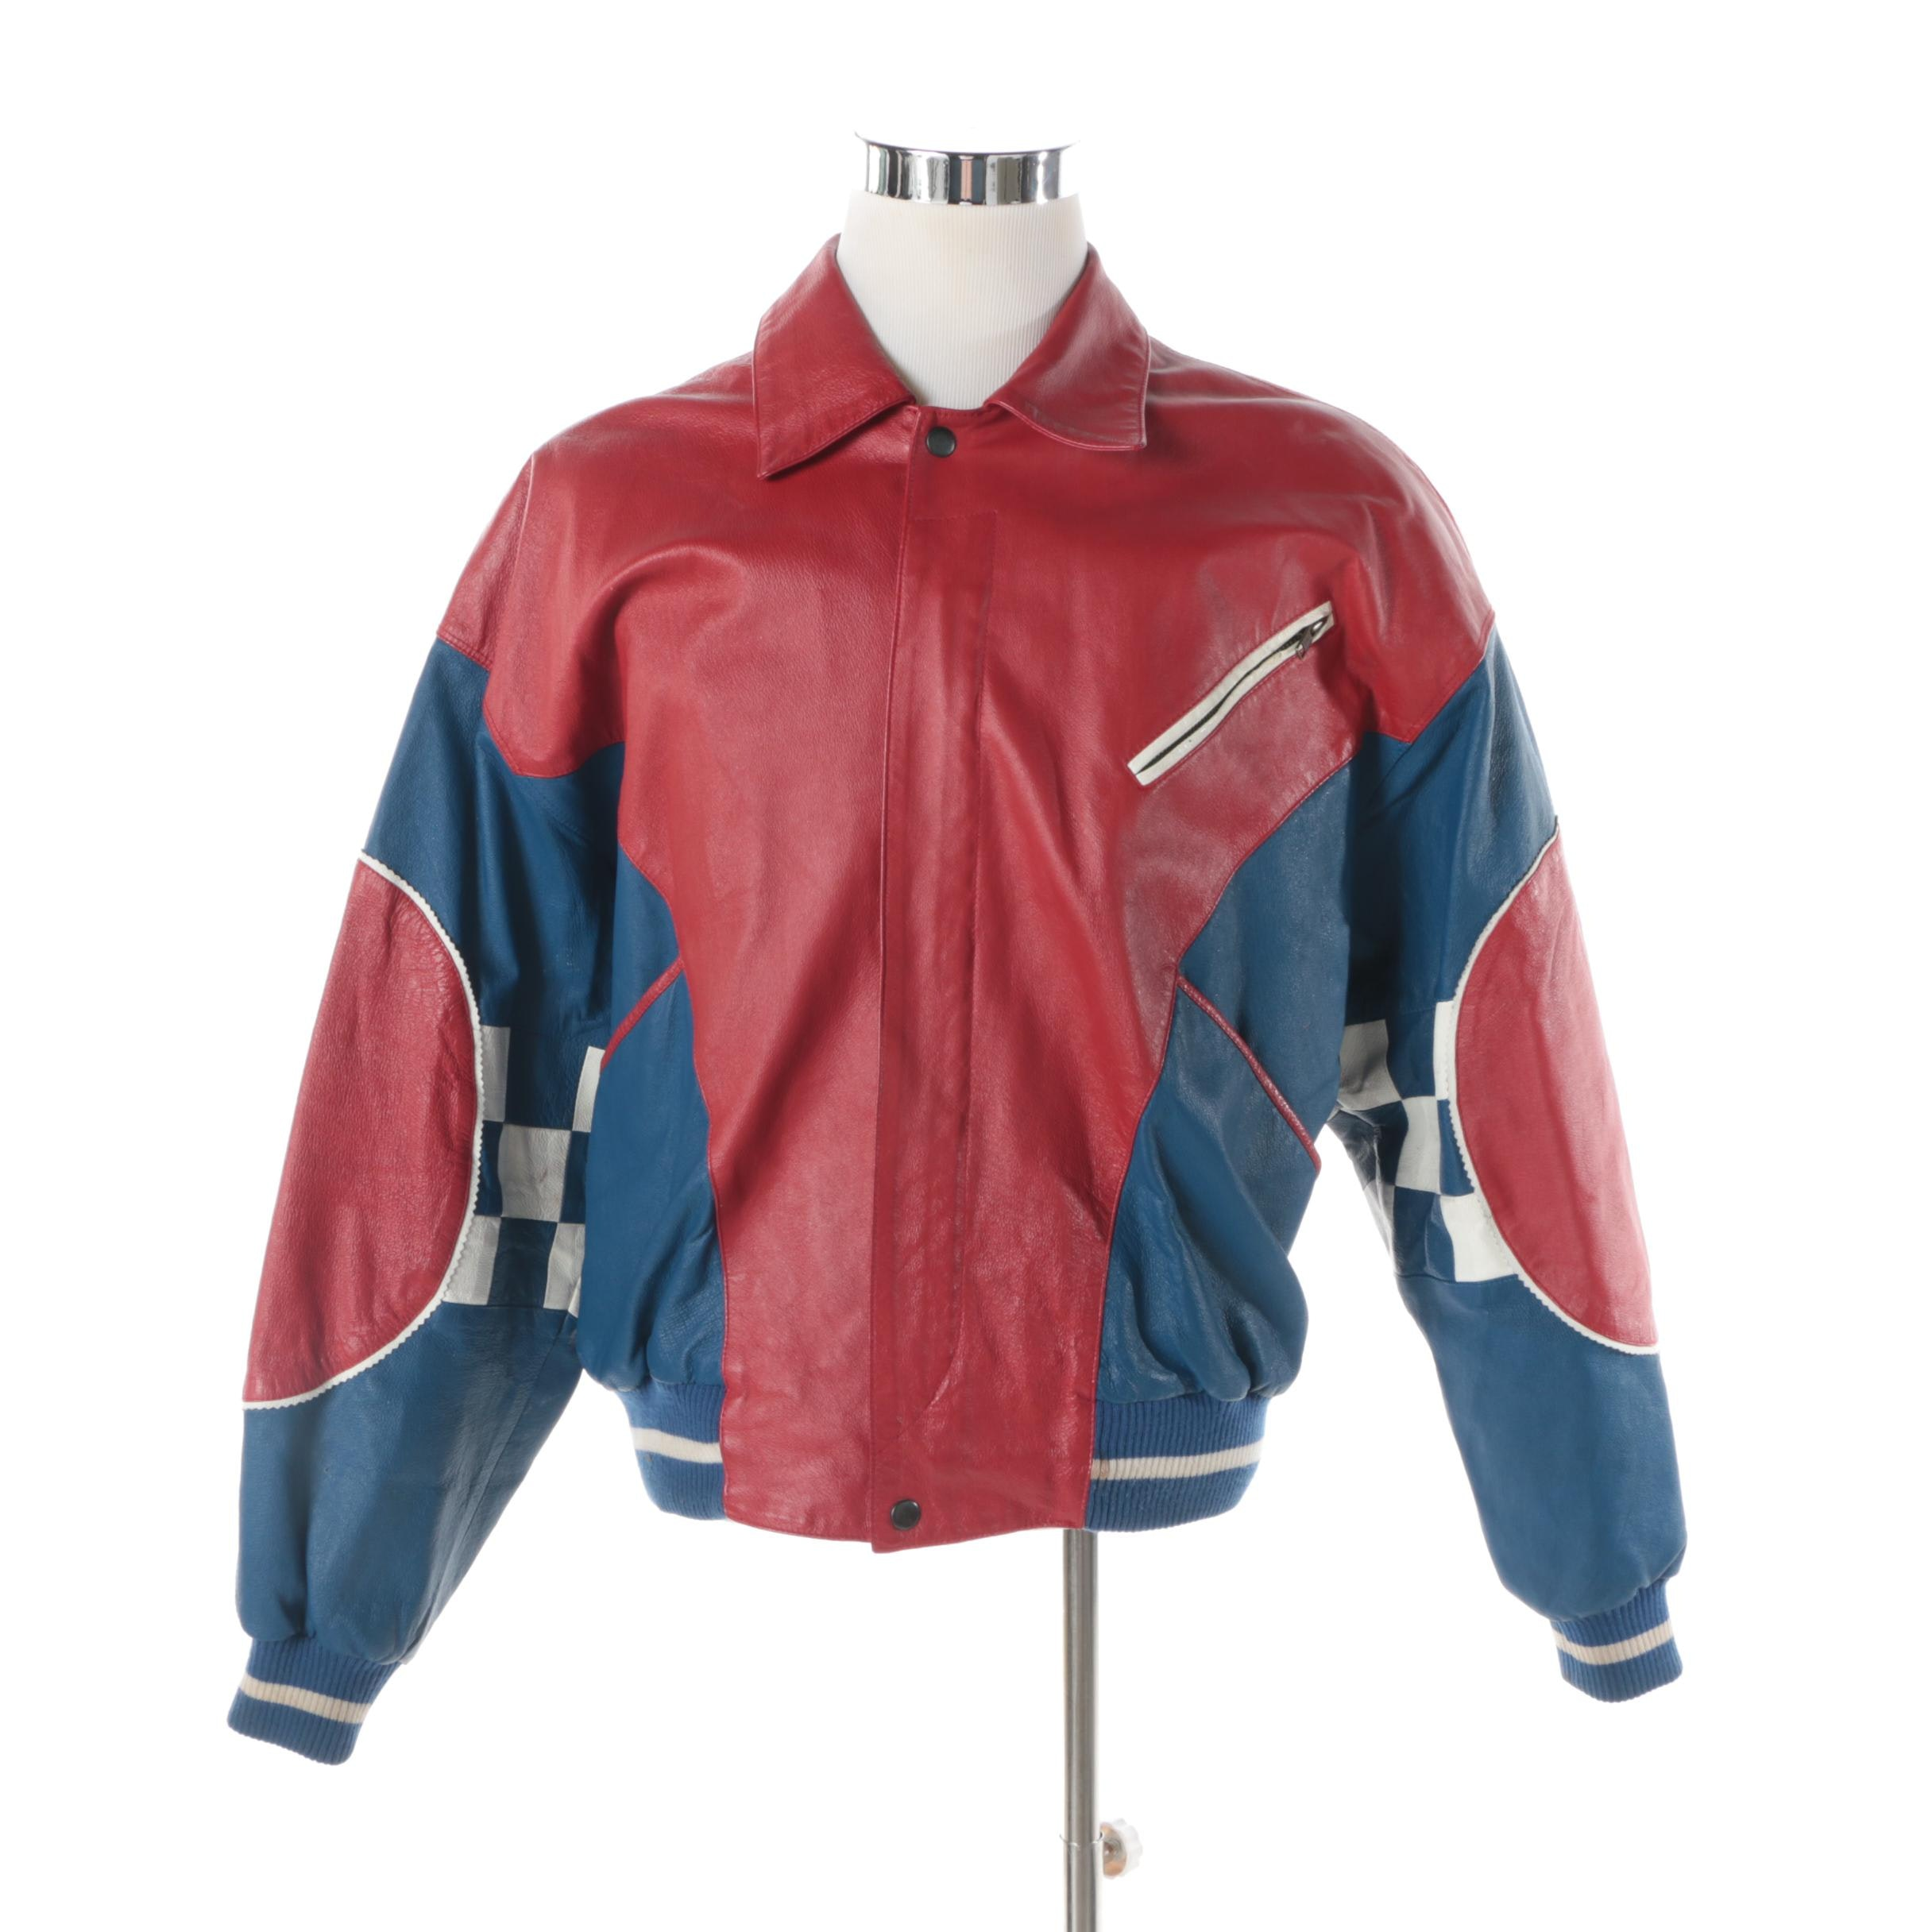 Men's 1990s Man Alive! Chill Out Red, White and Blue Leather Bomber Jacket